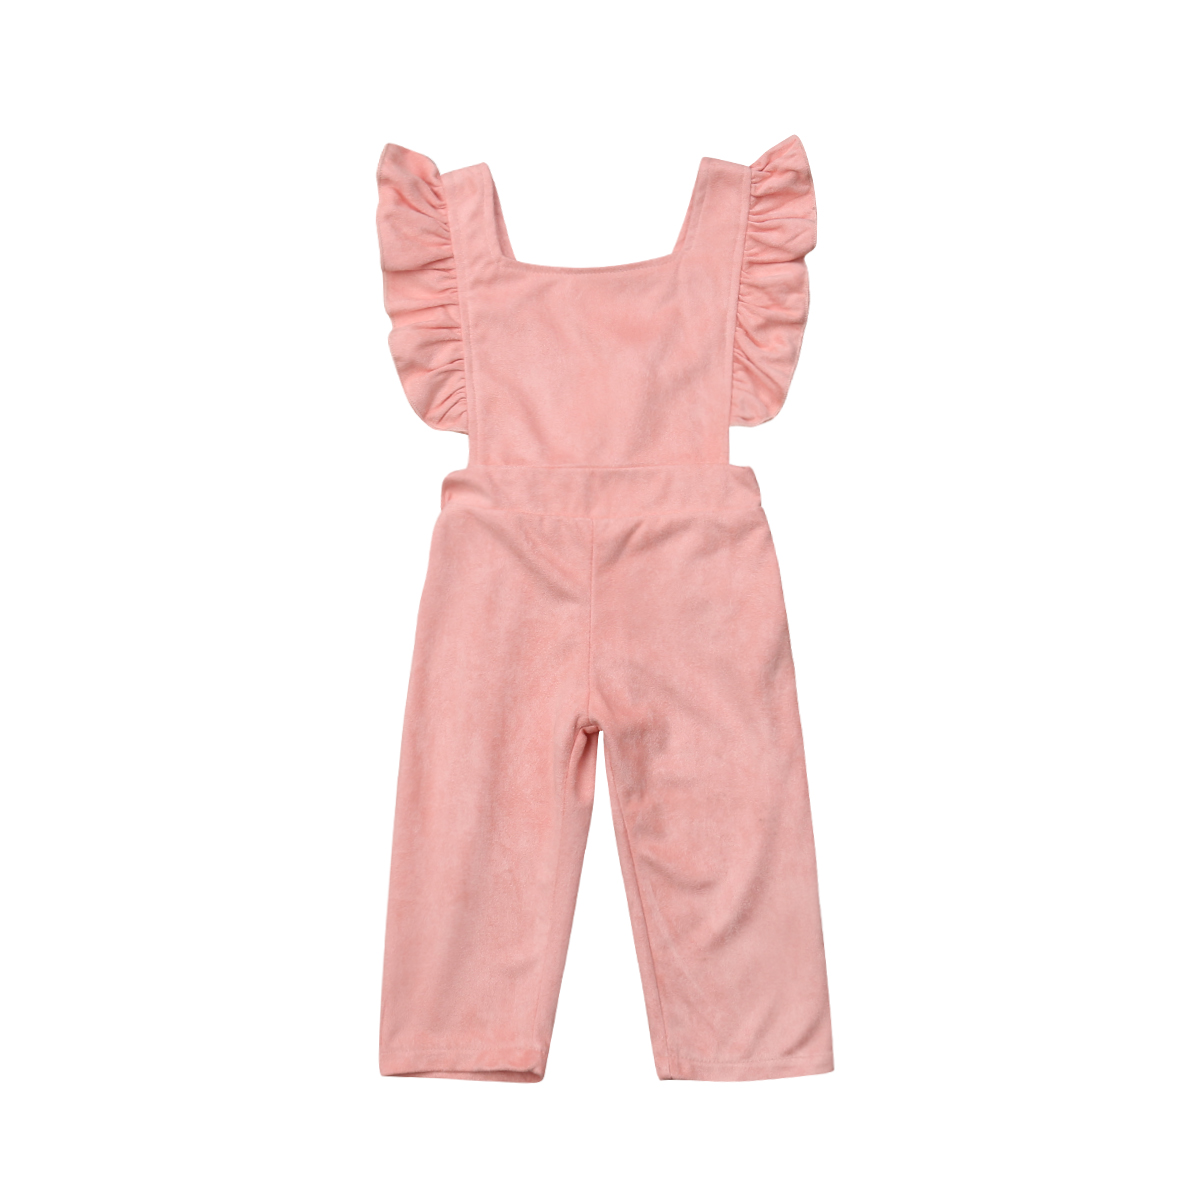 Newborn Baby Girl Kids Ruffle Sleeve Romper Overalls Long Pants Velvet Outfit Jumpsuit Kids Clothes tie front ruffle hem striped romper